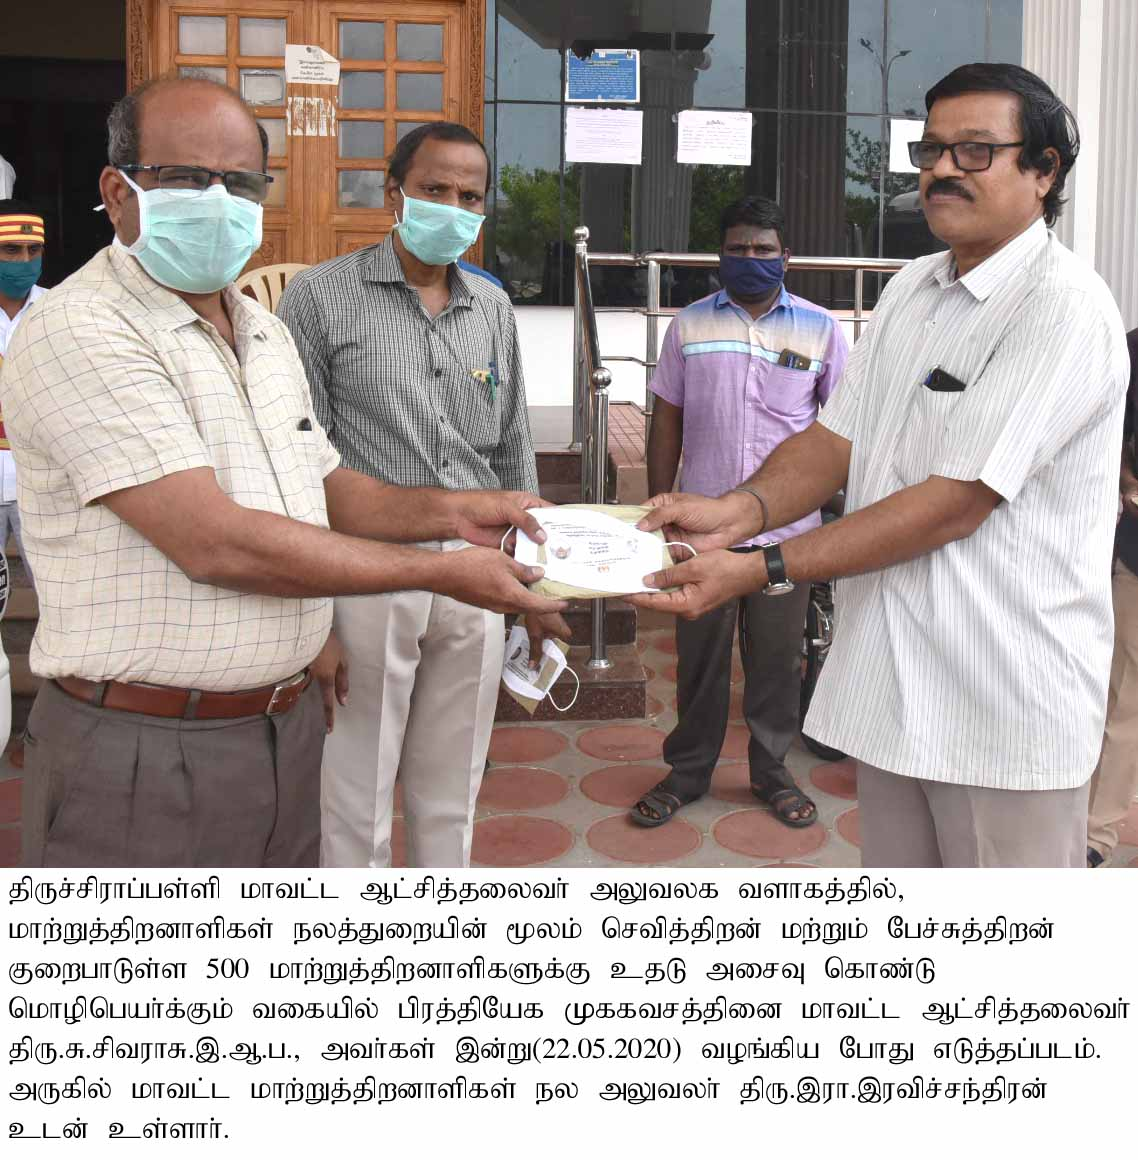 District Collector Distributed the Assistive Devices to Differently abled Persons on 22-05-2020